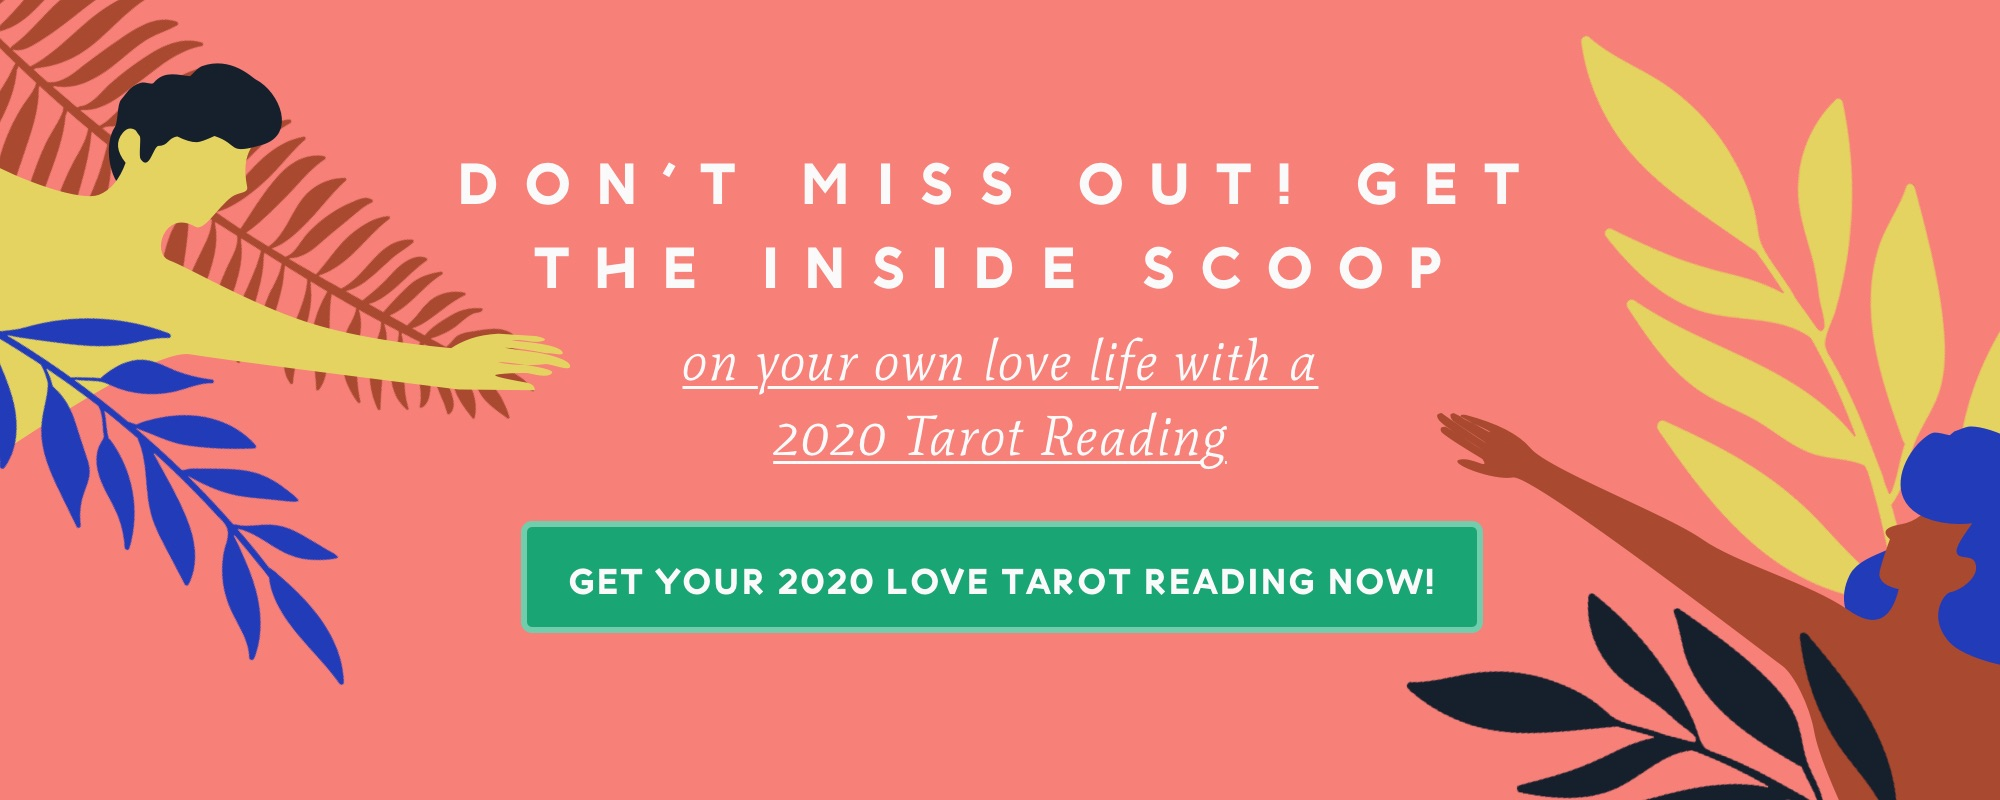 Get your 2020 love tarot